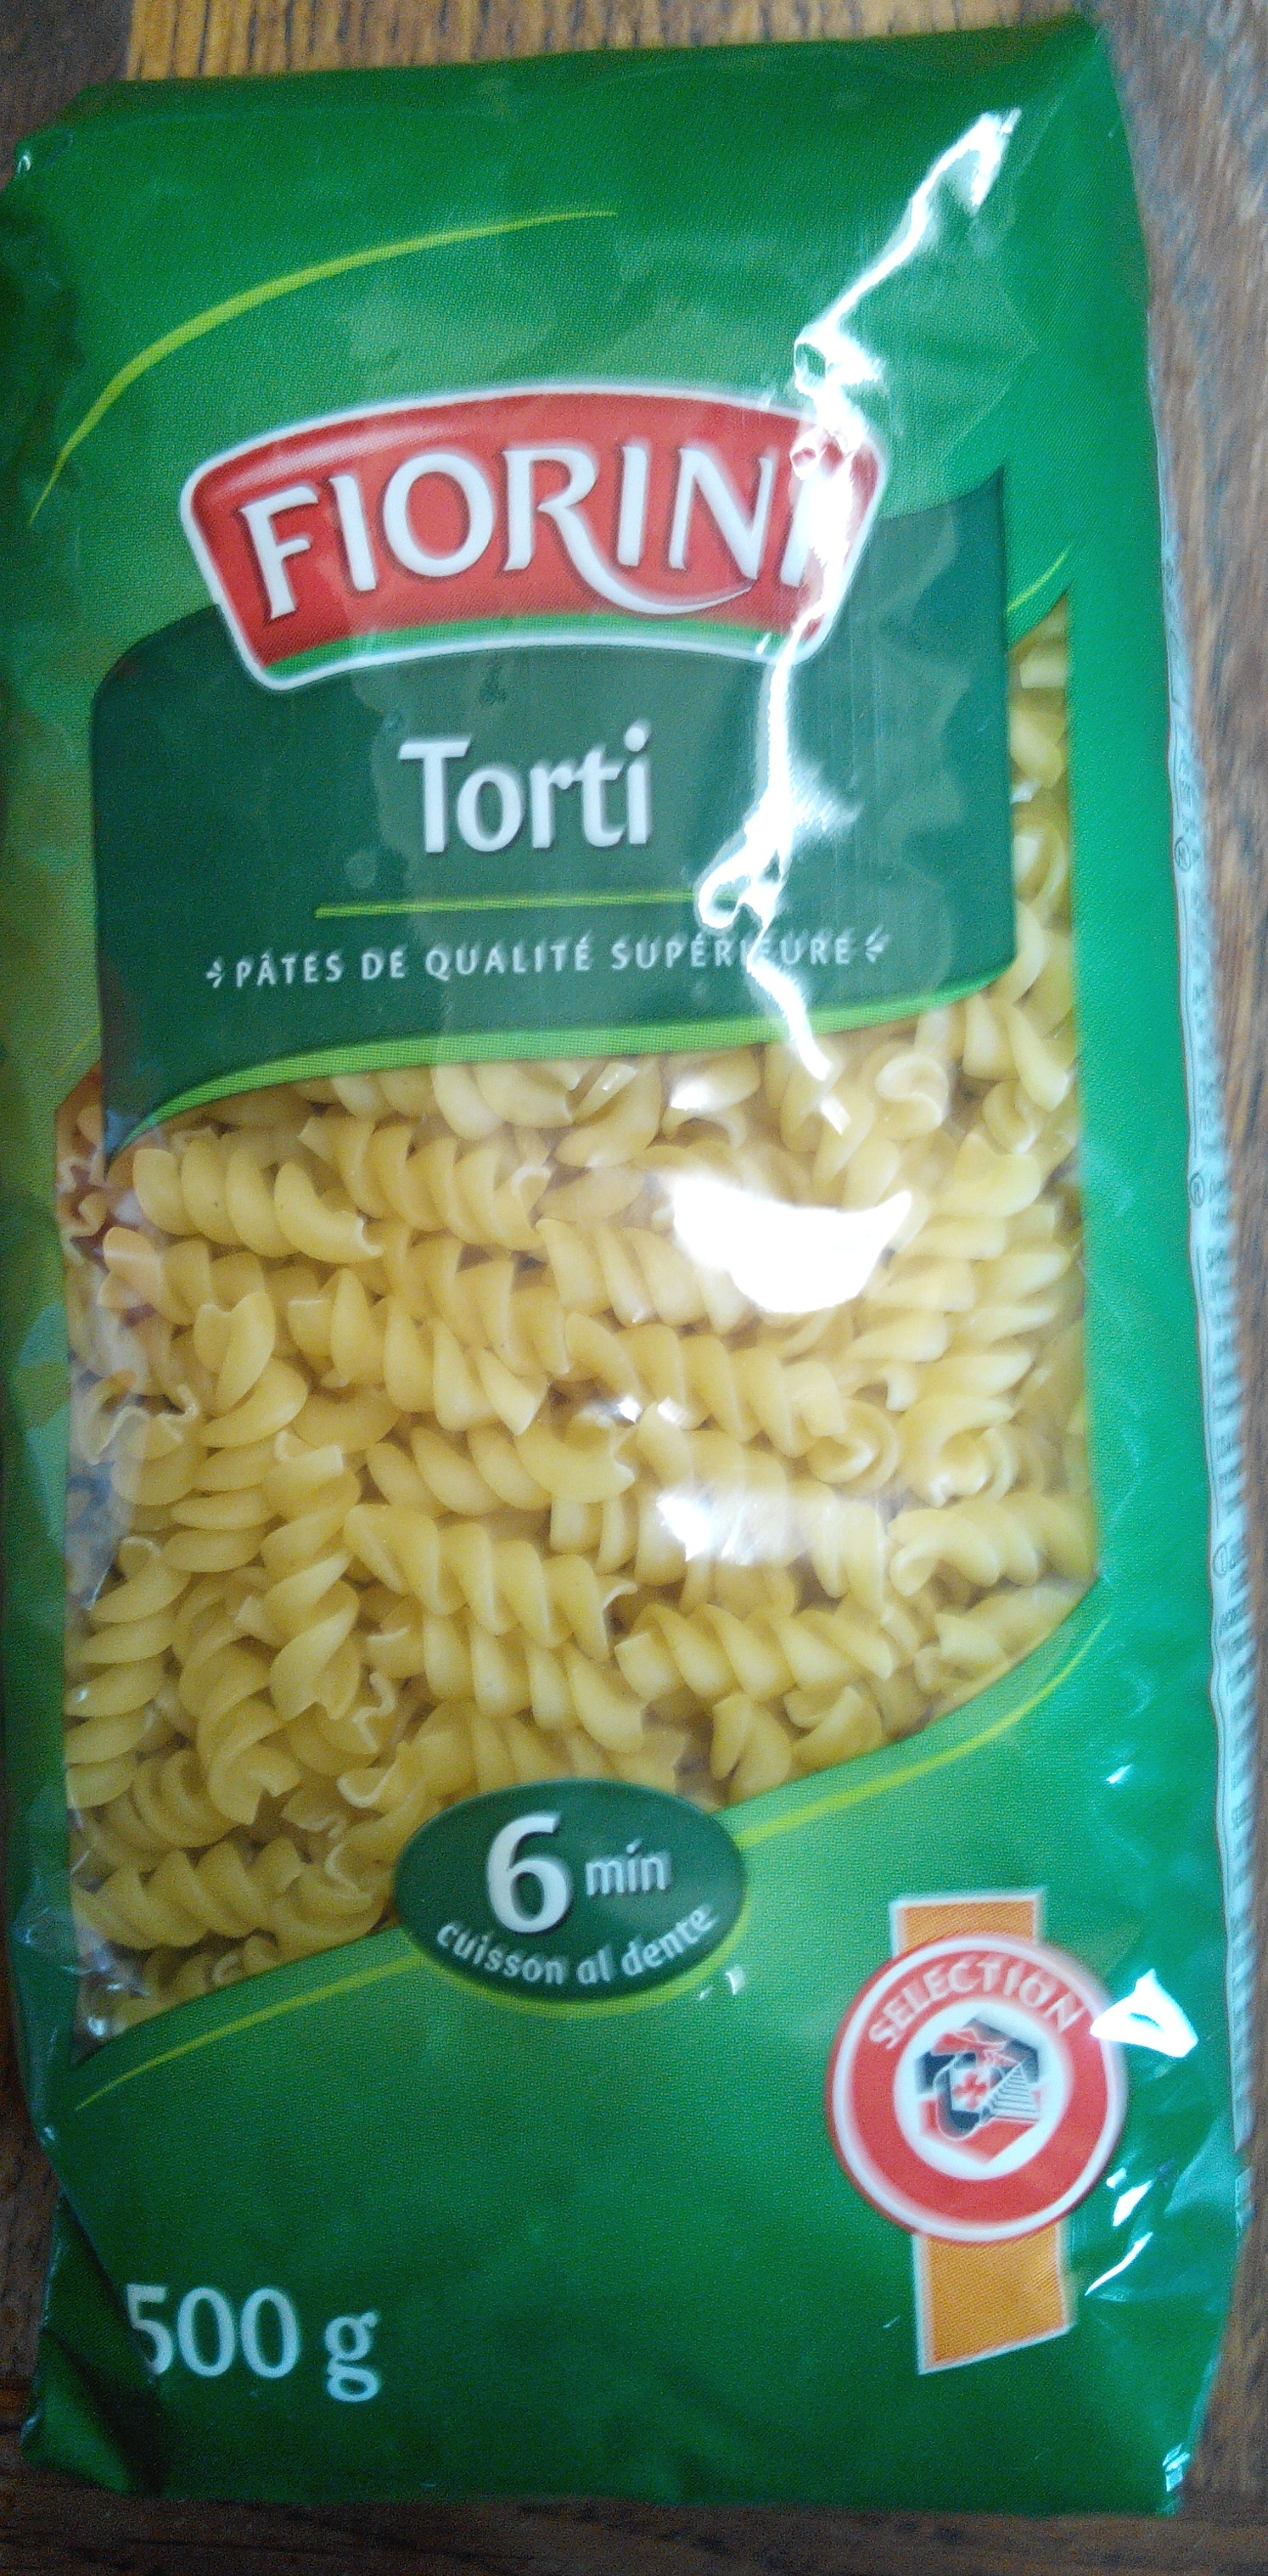 Torti 500 g - Product - fr